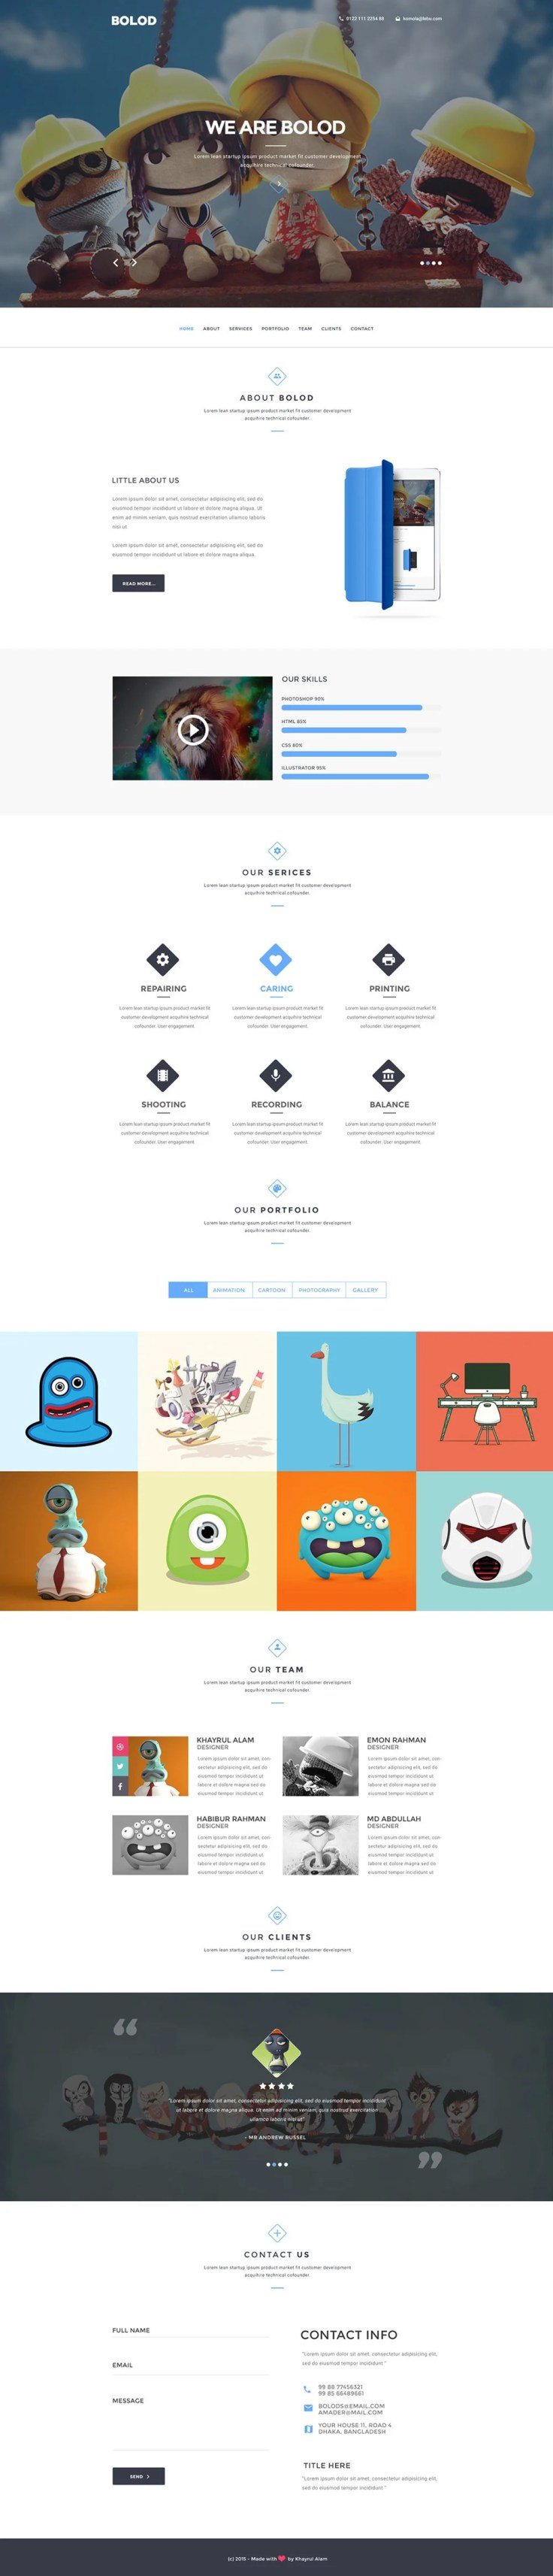 Bolod Free One Page Web Template PSD